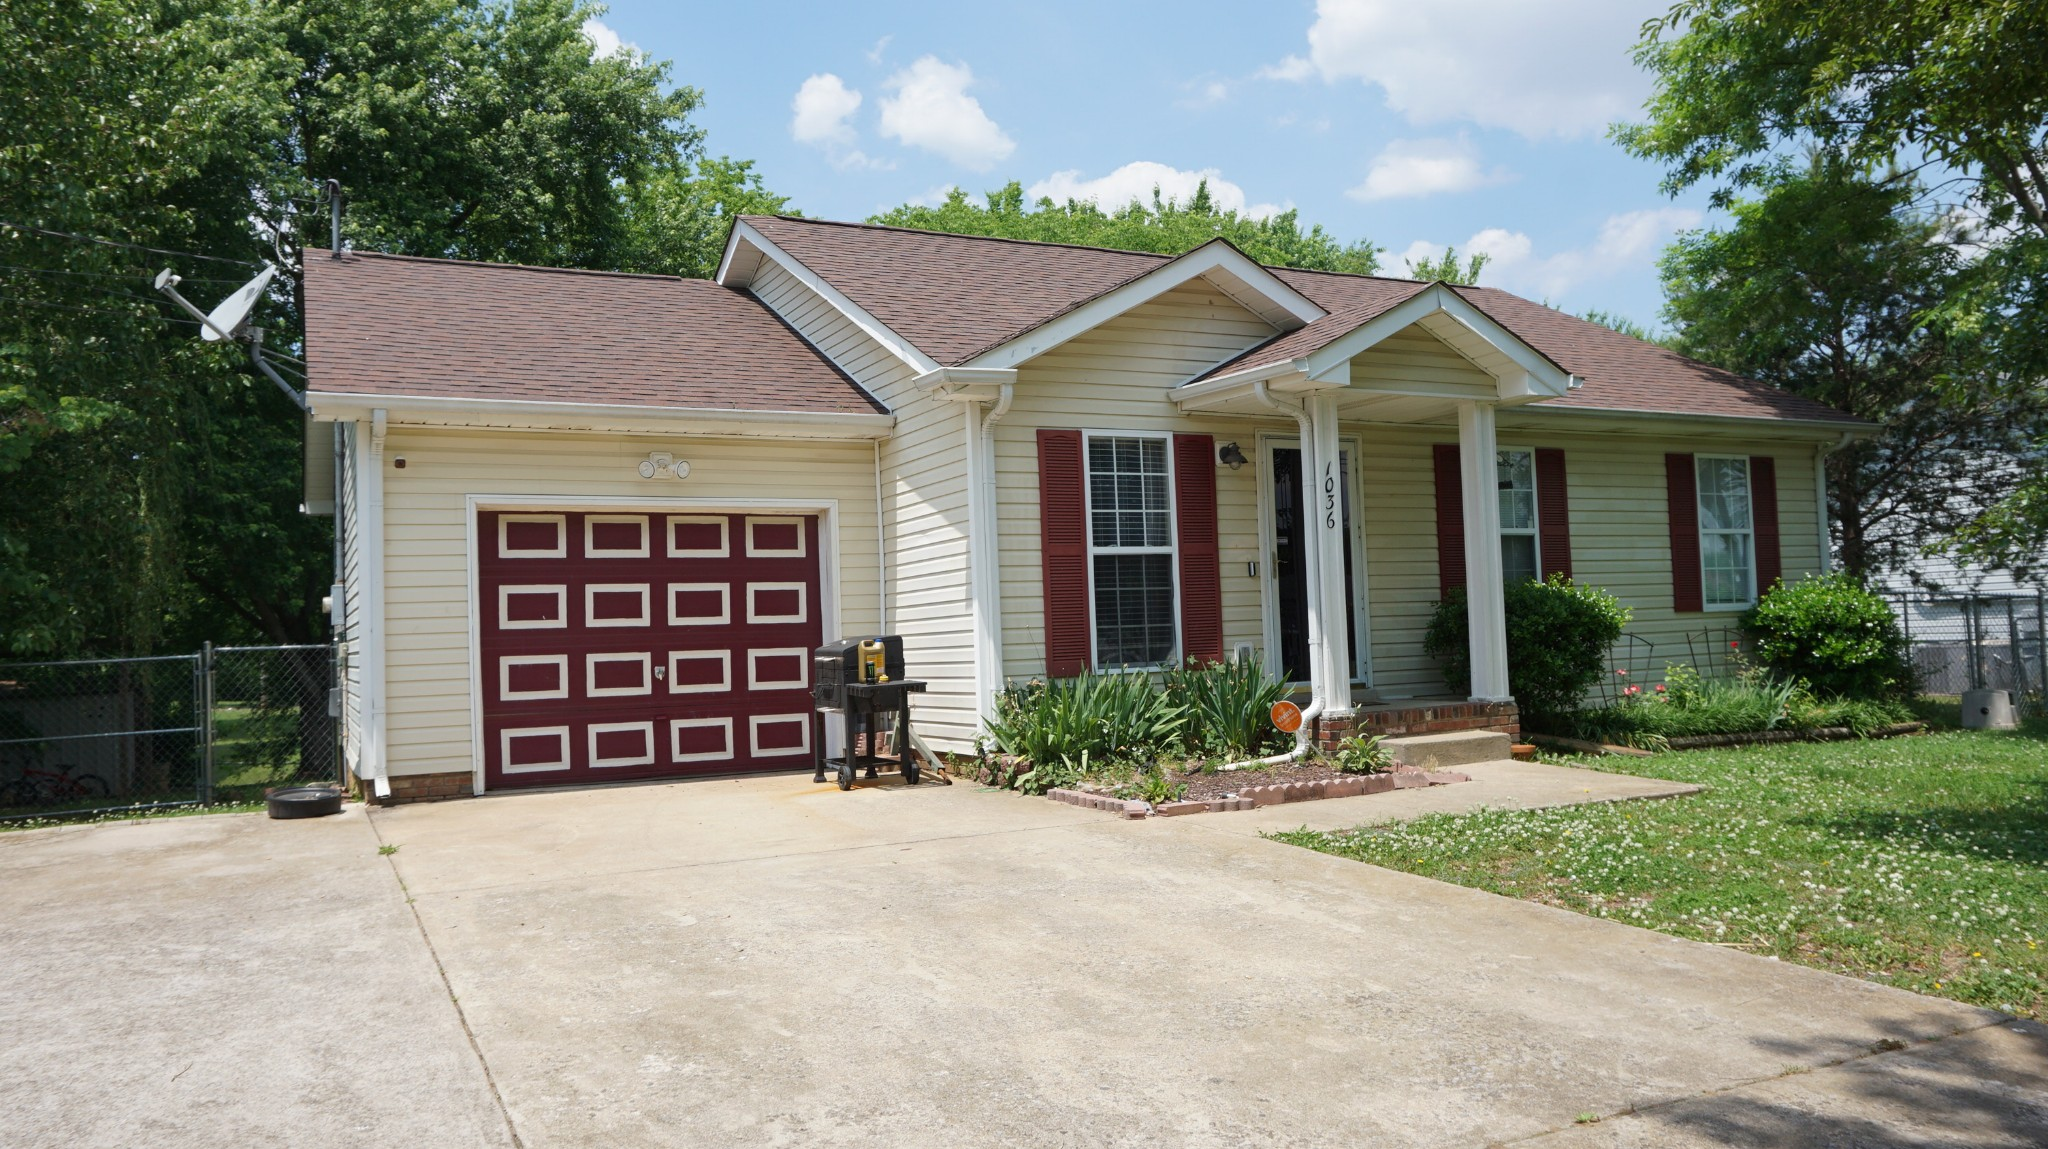 NICE RANCH HOME WITH ONE CAR GARAGE. FEATURES 3 BEDROOMS, 1.5 BATHROOMS. STORAGE SHED. EASY ACCESS TO I-24 AND CLOSE TO FORT CAMPBELL.